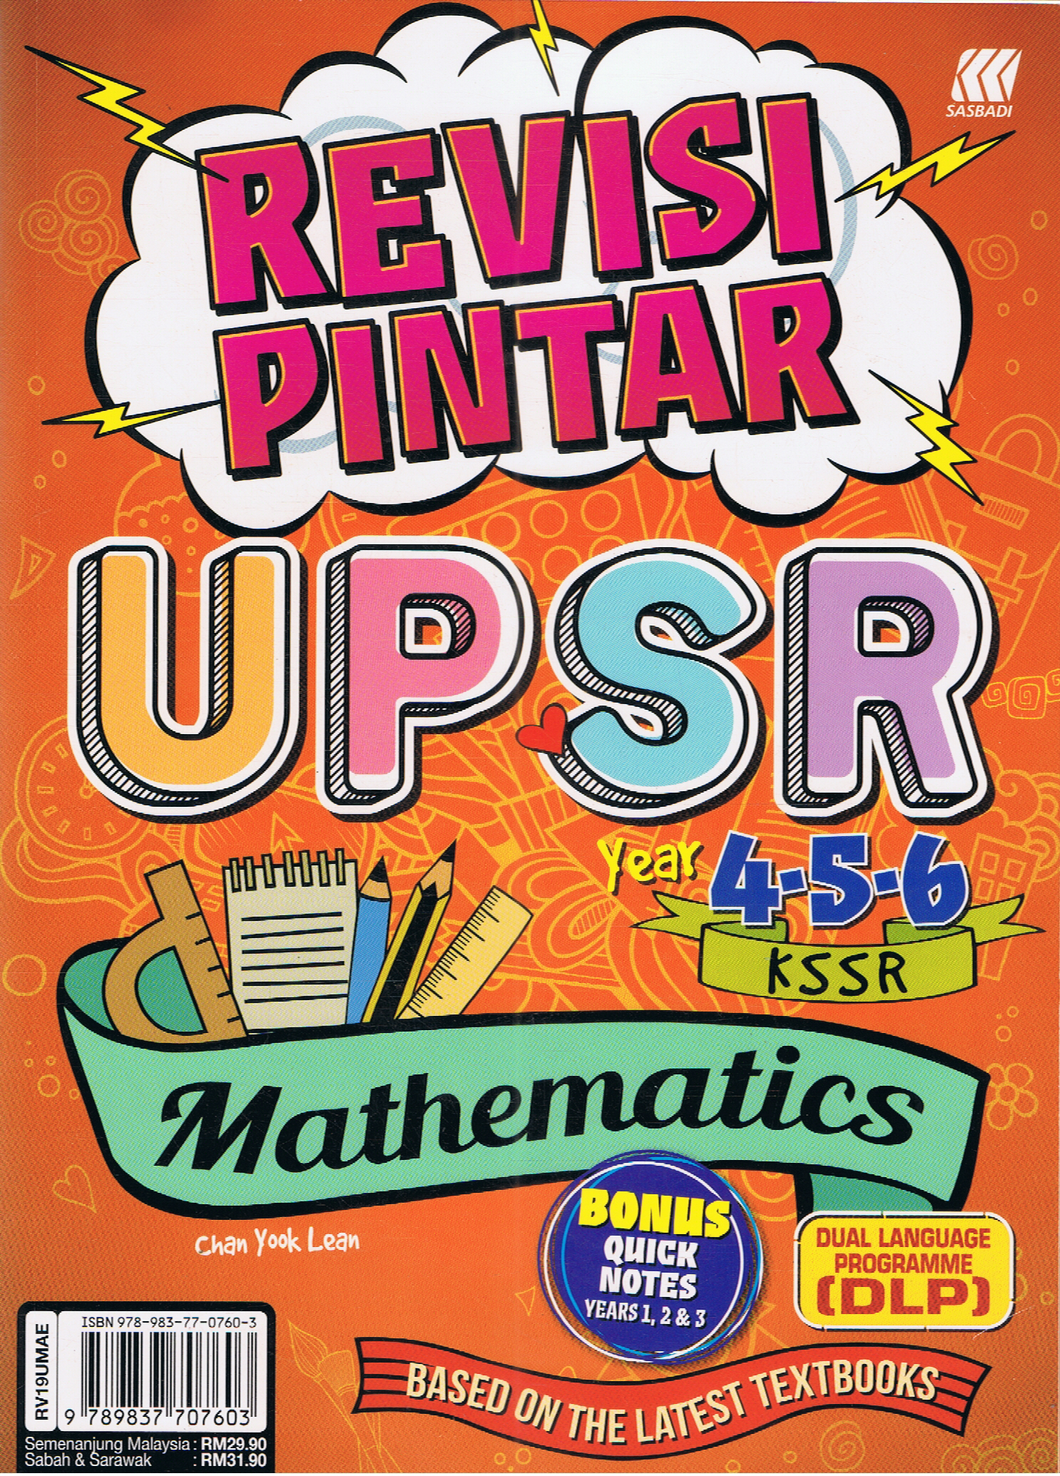 Revisi Pintar UPSR: Mathematics UPSR